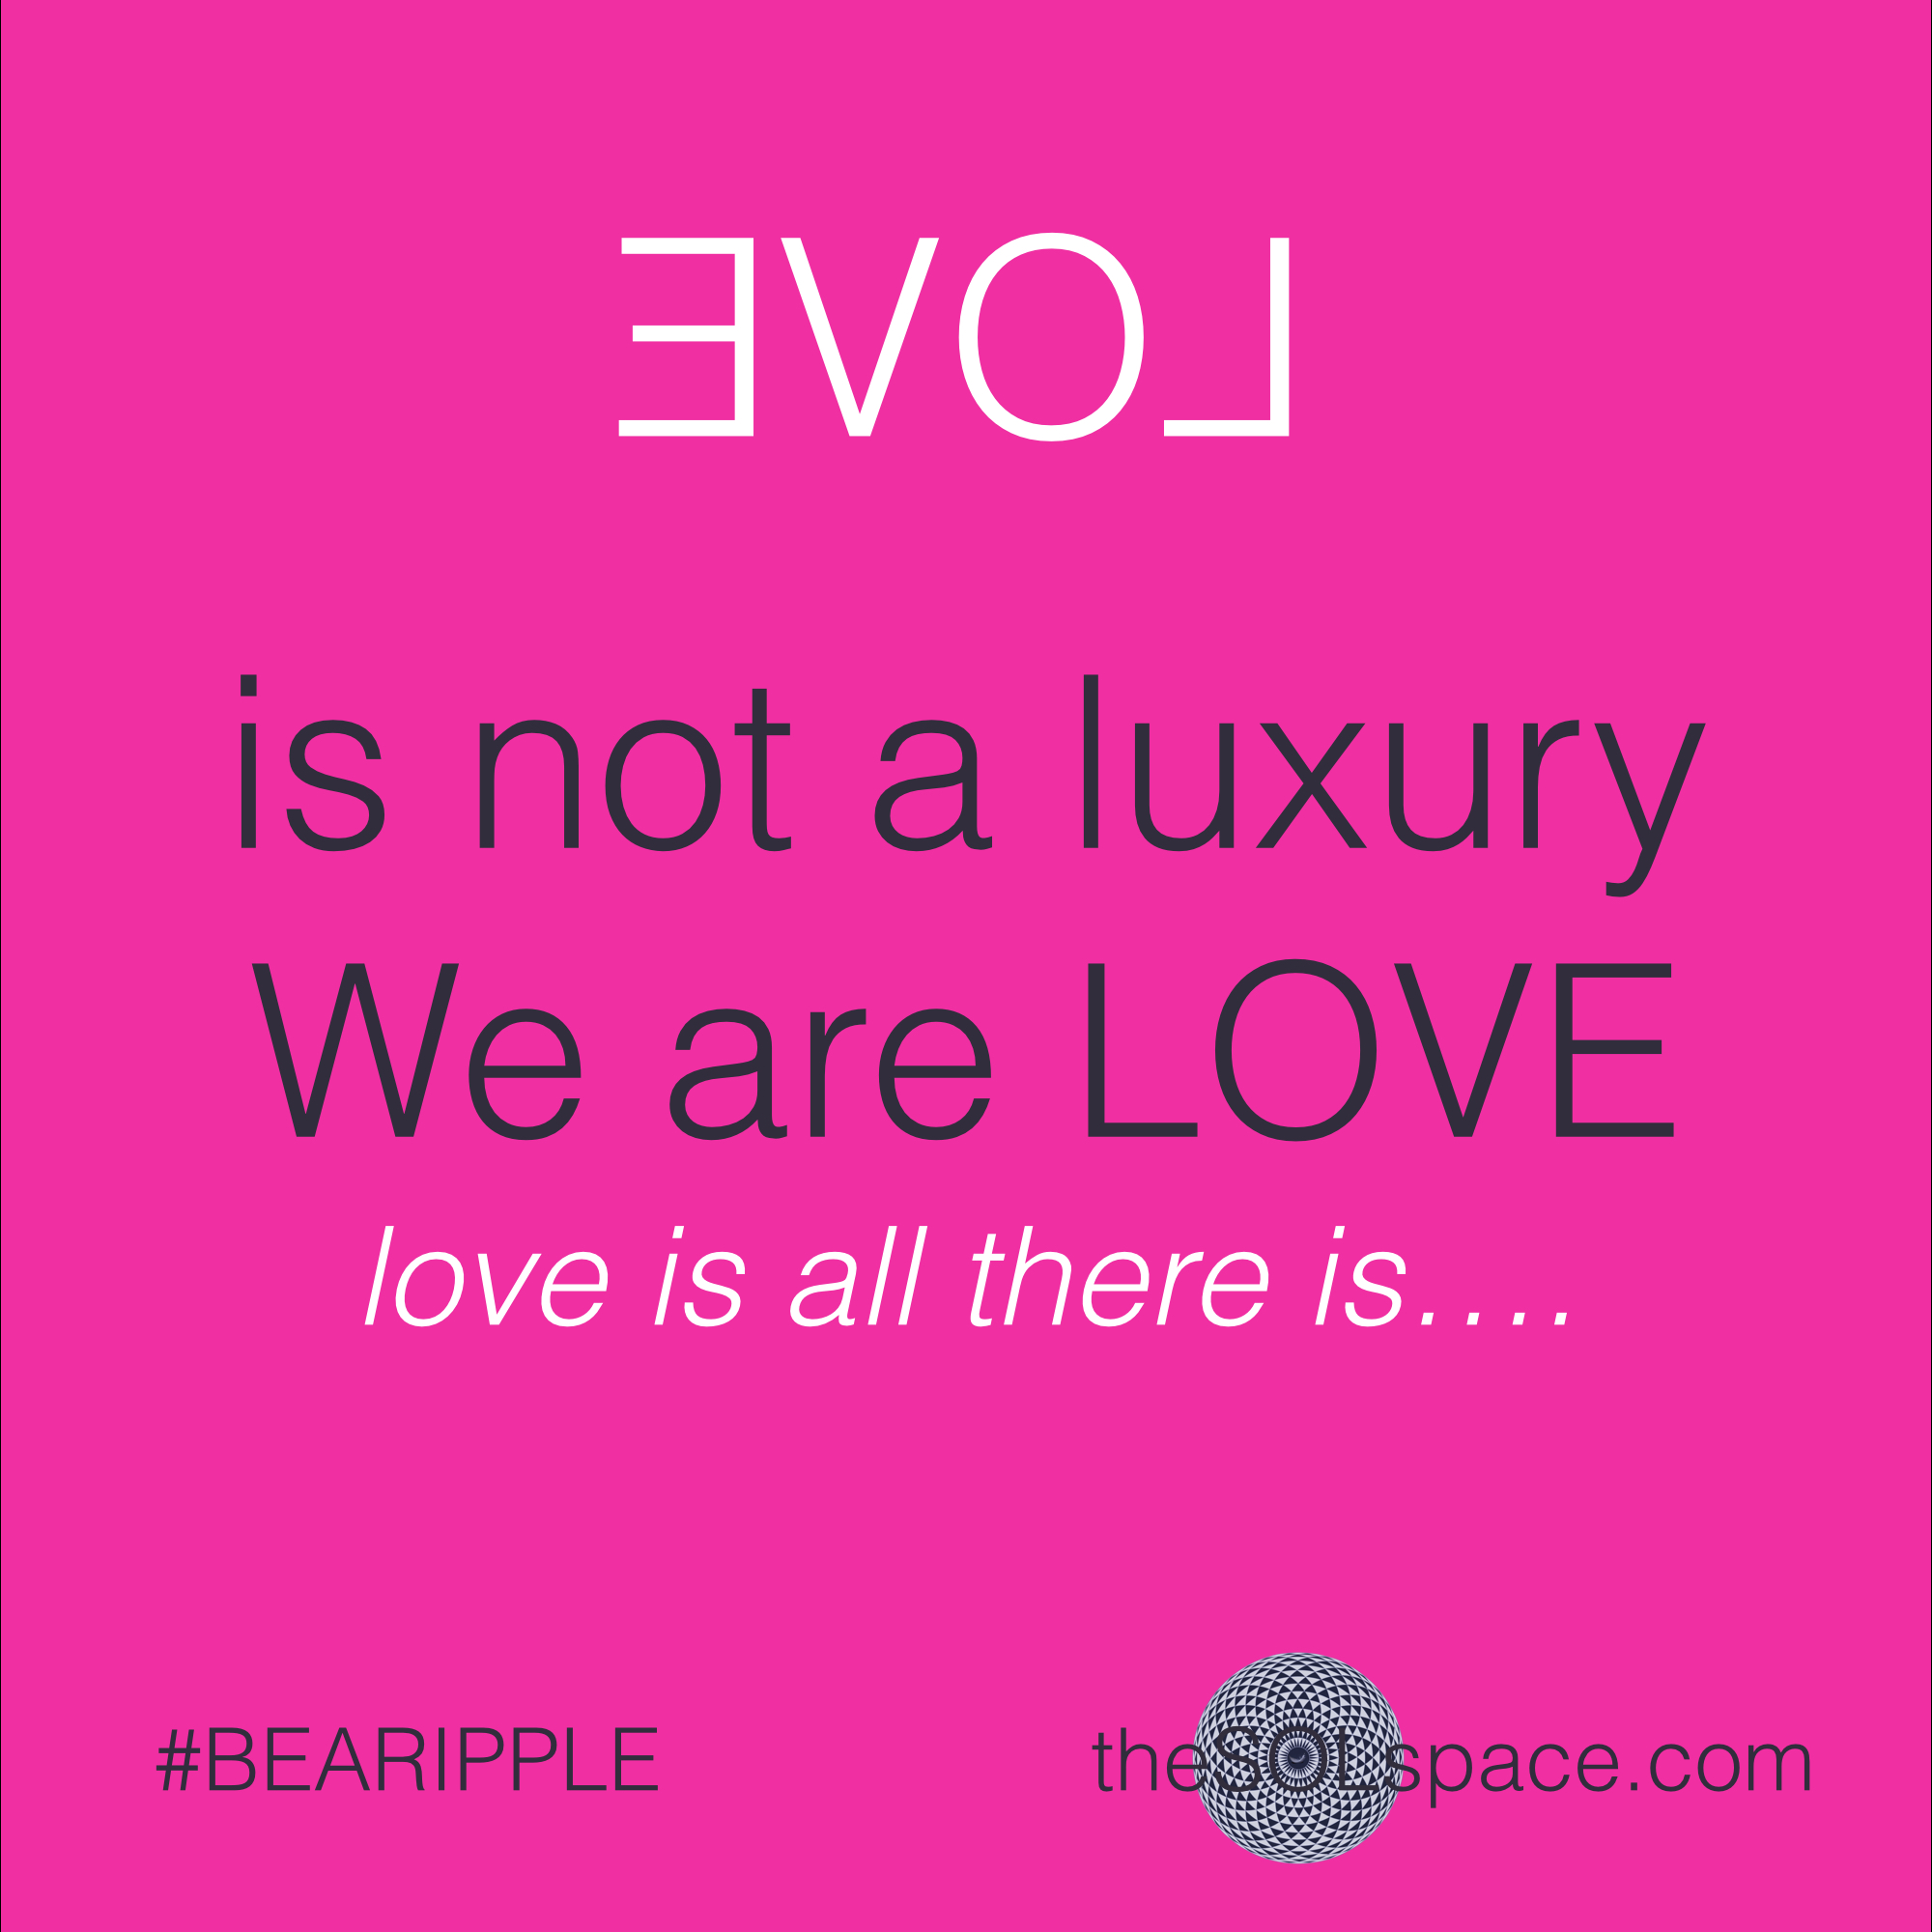 #BeARipple.. LOVE is not a luxury, we are love..love is all there is...@theSOLspace